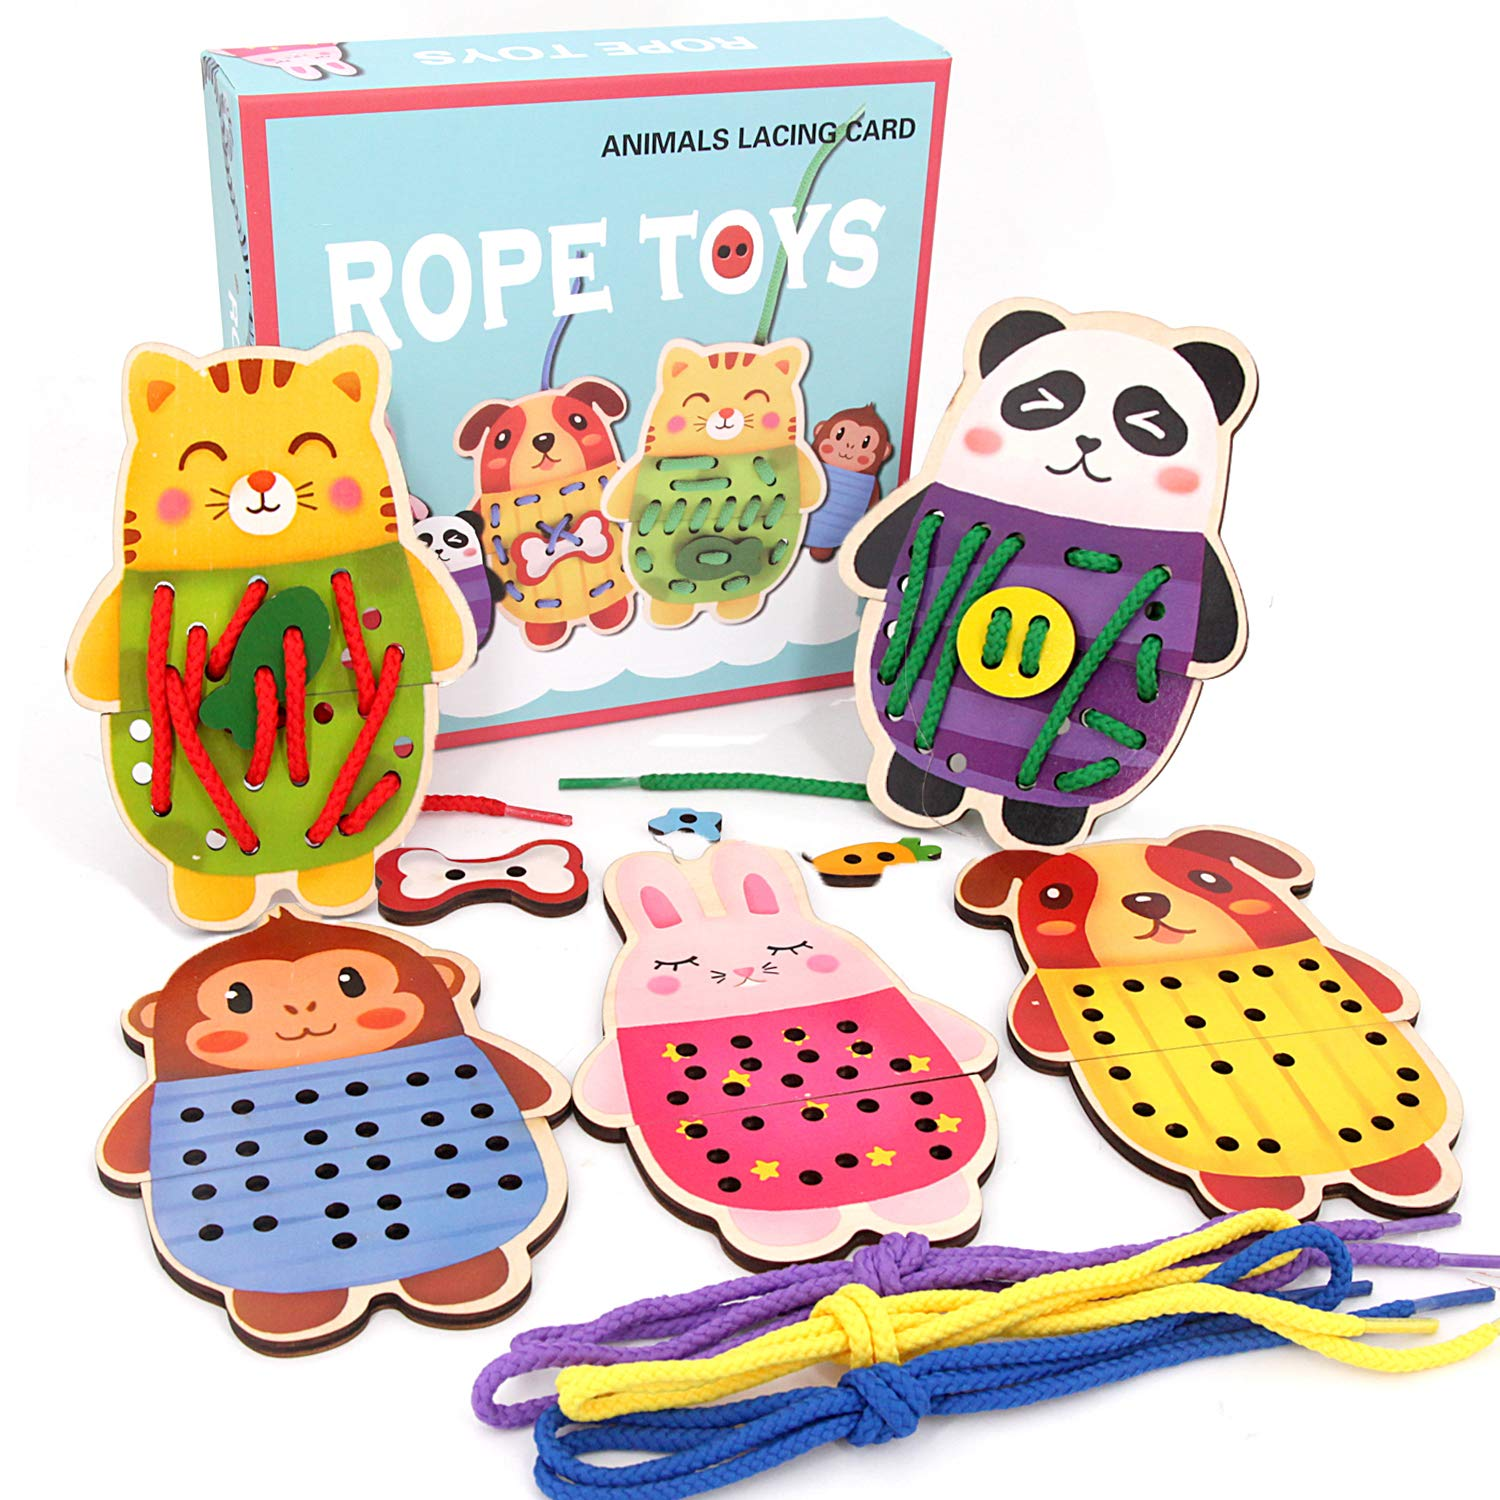 Sealive Wooden Animals Lacing Cards for Toddlers, 5 Wooden Panels and 5 Matching Laces, Zoo Animal Lace and Trace Activity Set, Montessori Toys Sewing Cards for Kids